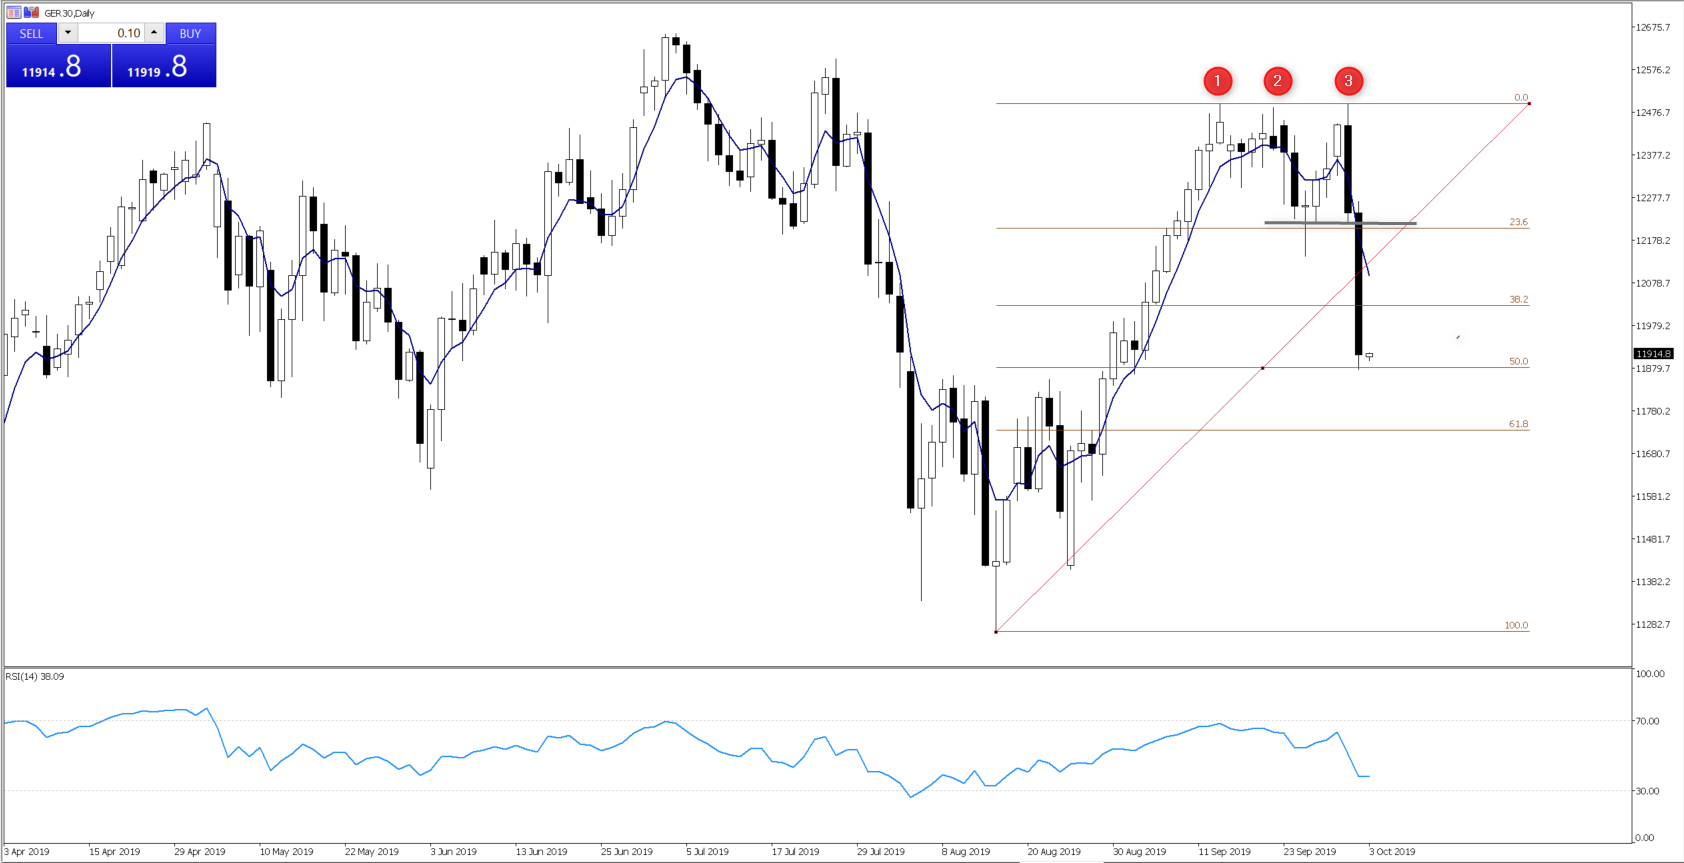 GER30 daily